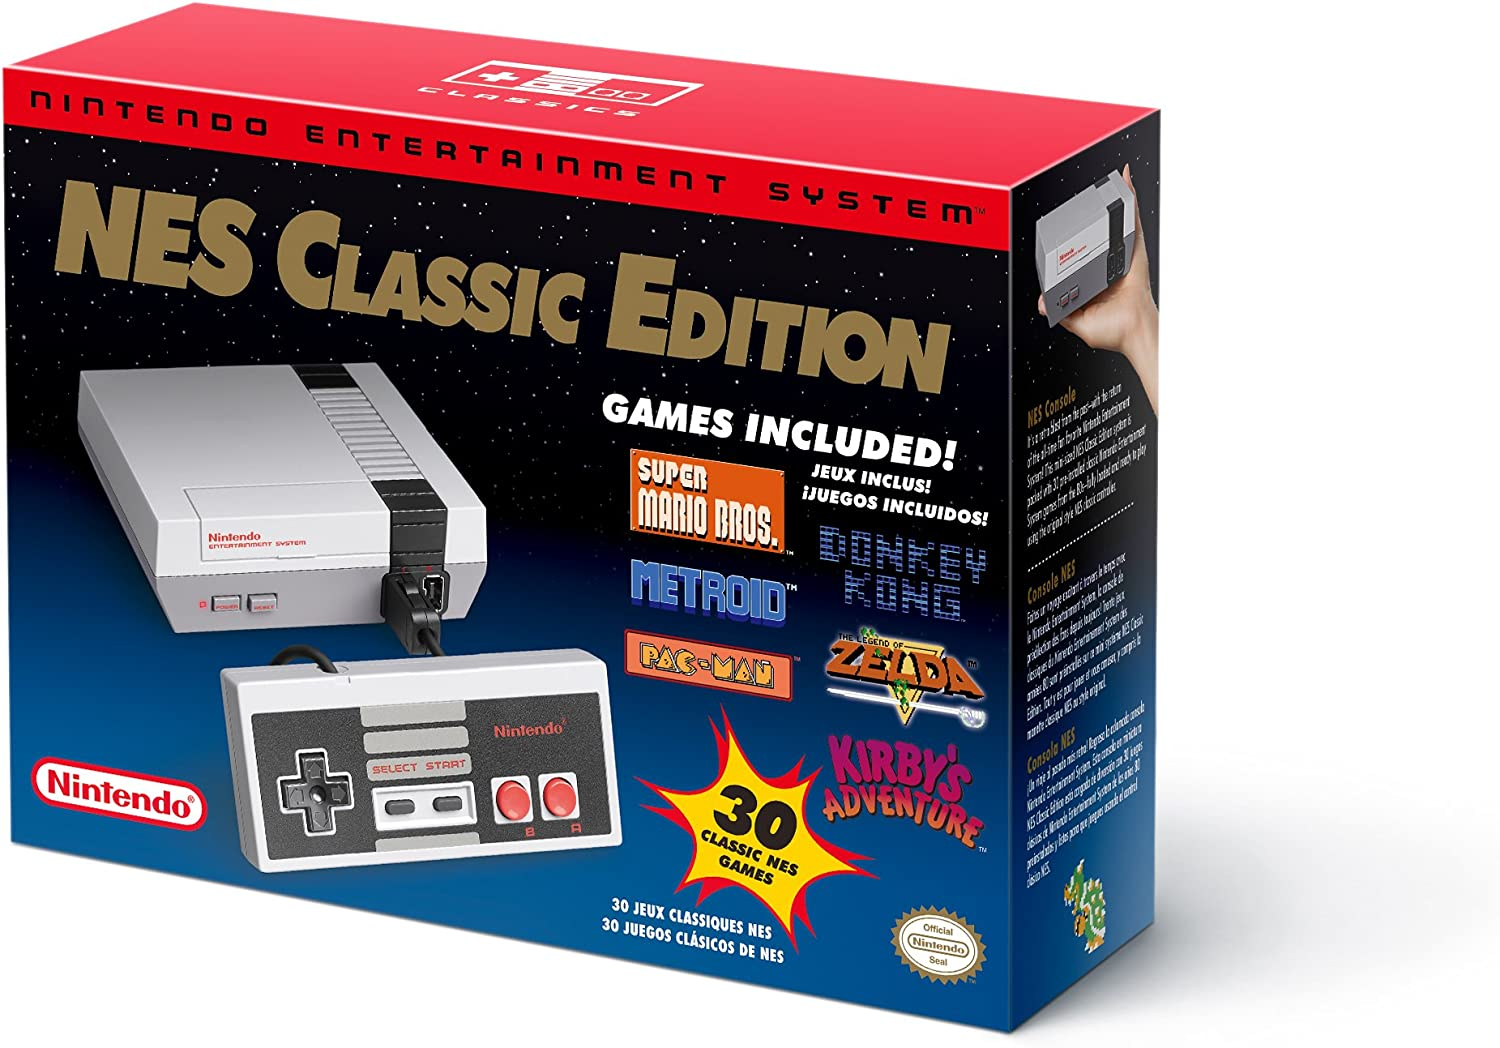 Nes Classic Edition Empty Box Only no Video Game Console Included Year-End Bargain Sale